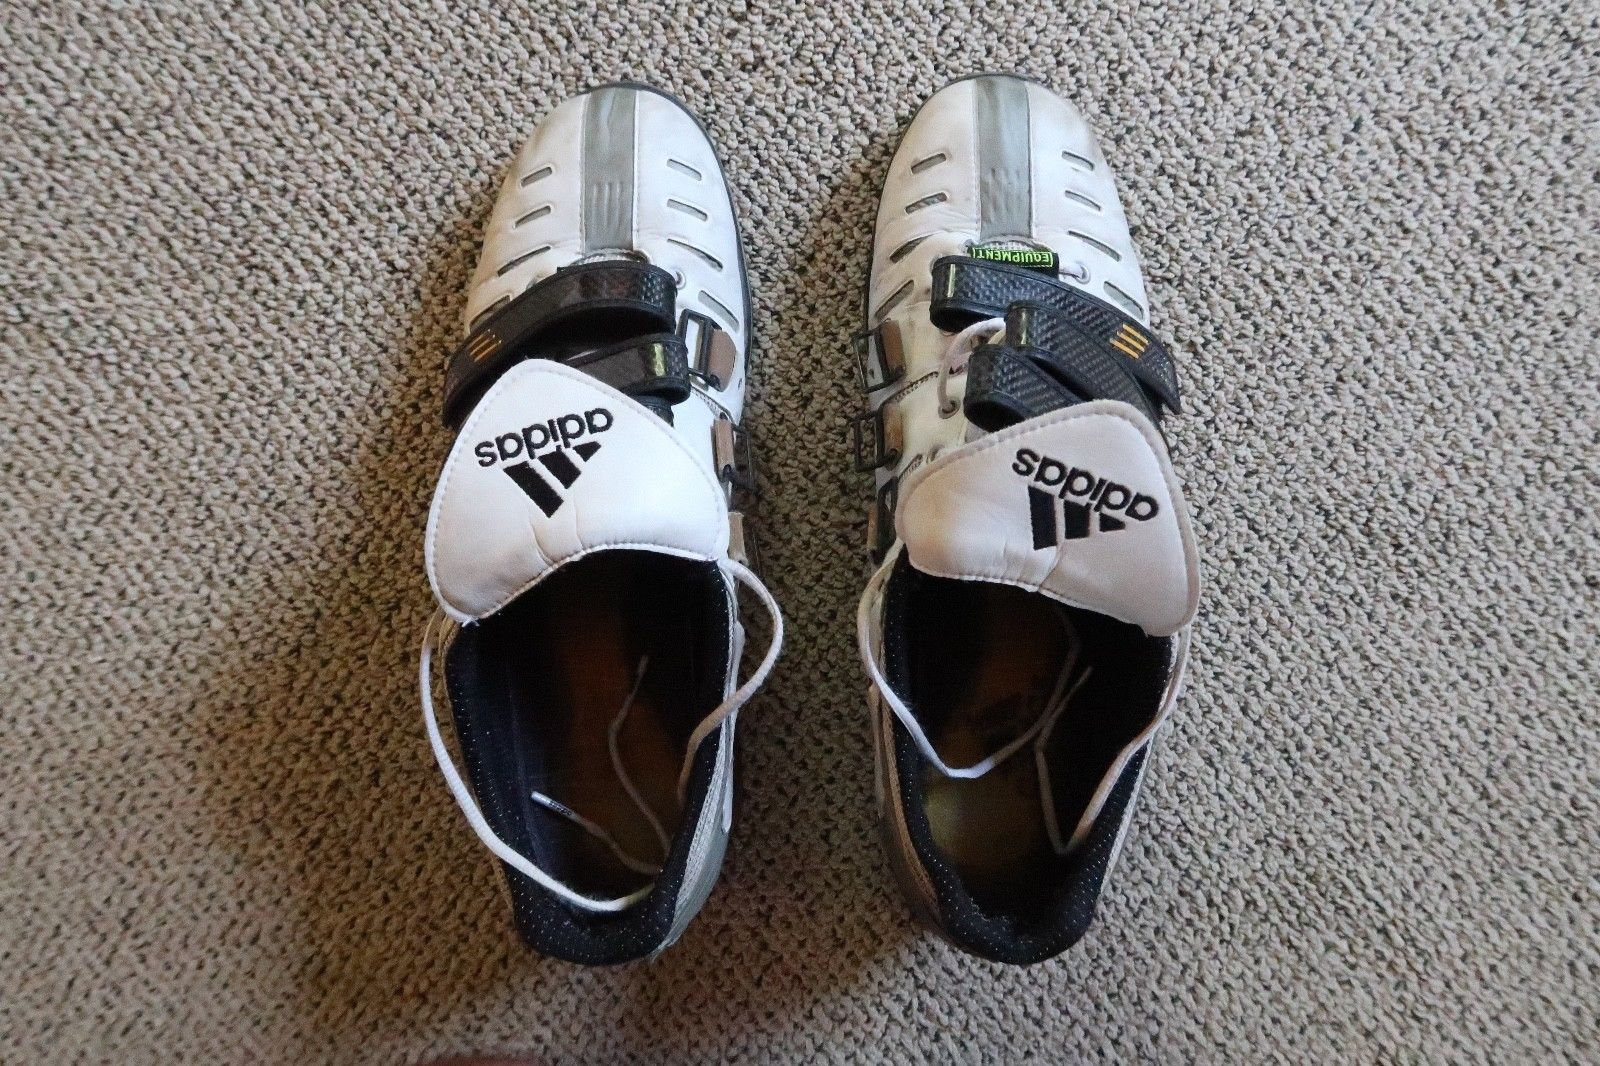 635041b5d4e8 2000 Adidas Weightlifting Shoes rare wood heel Used Size 13